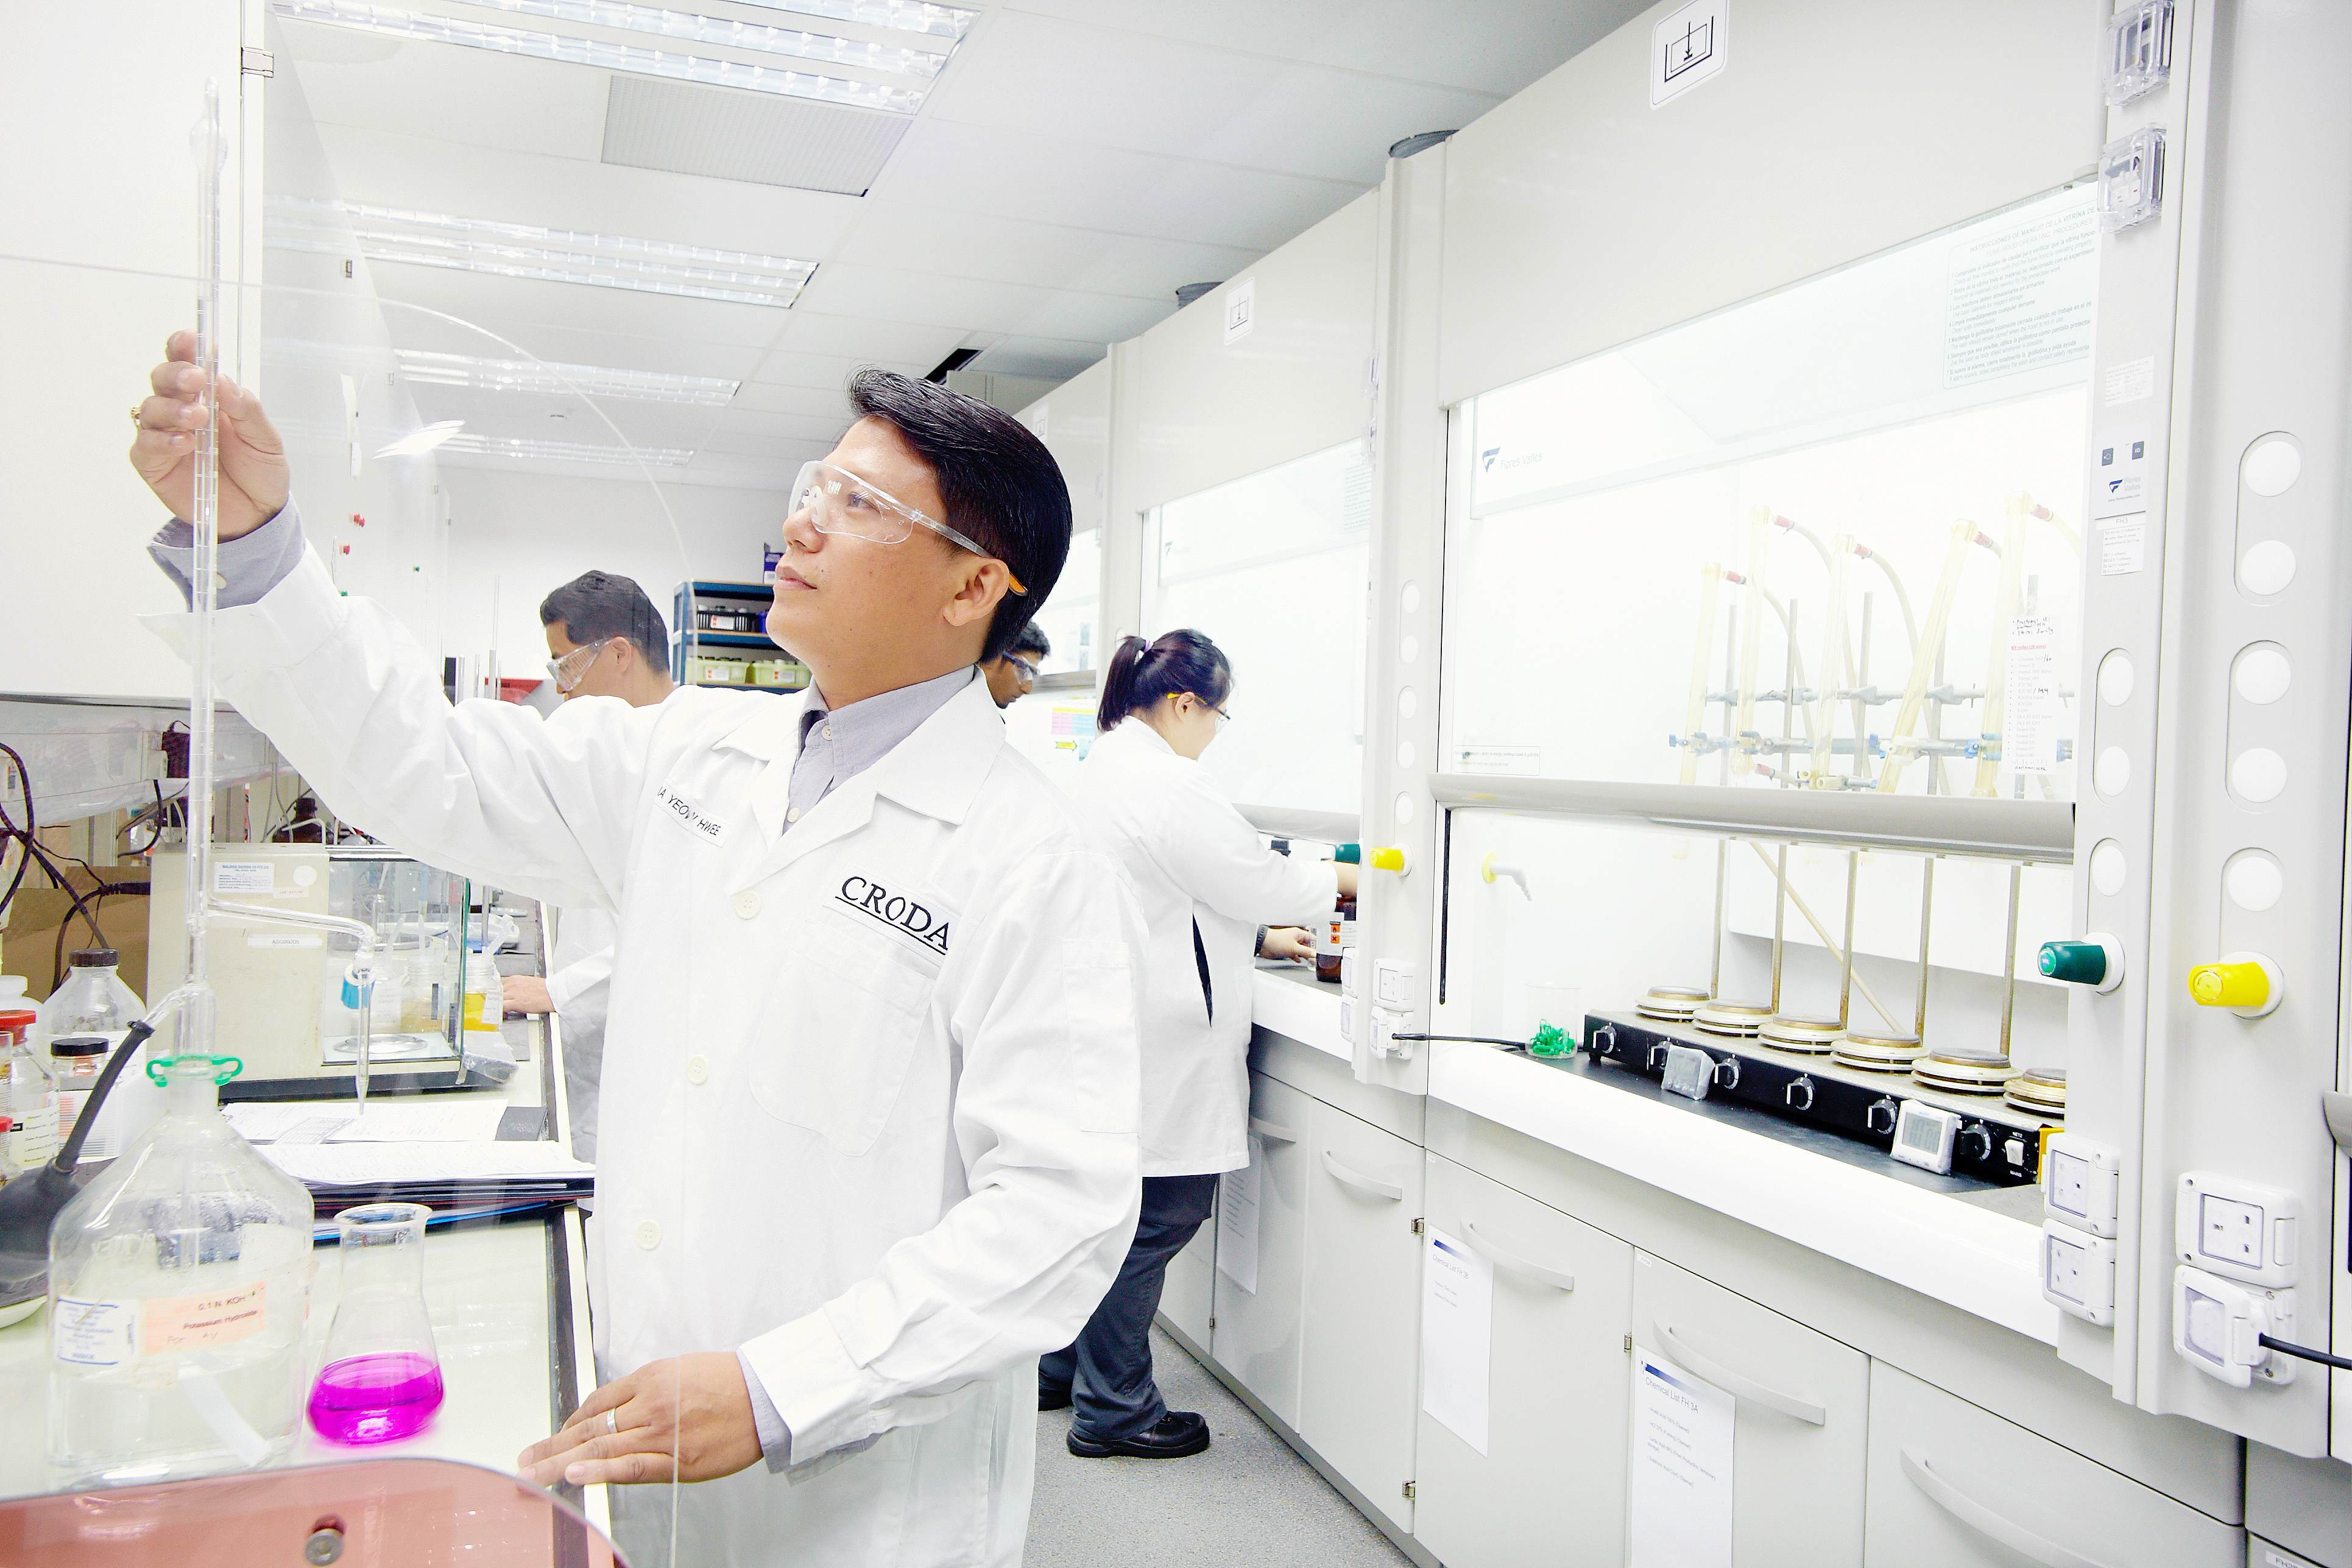 Croda employee working in the lab